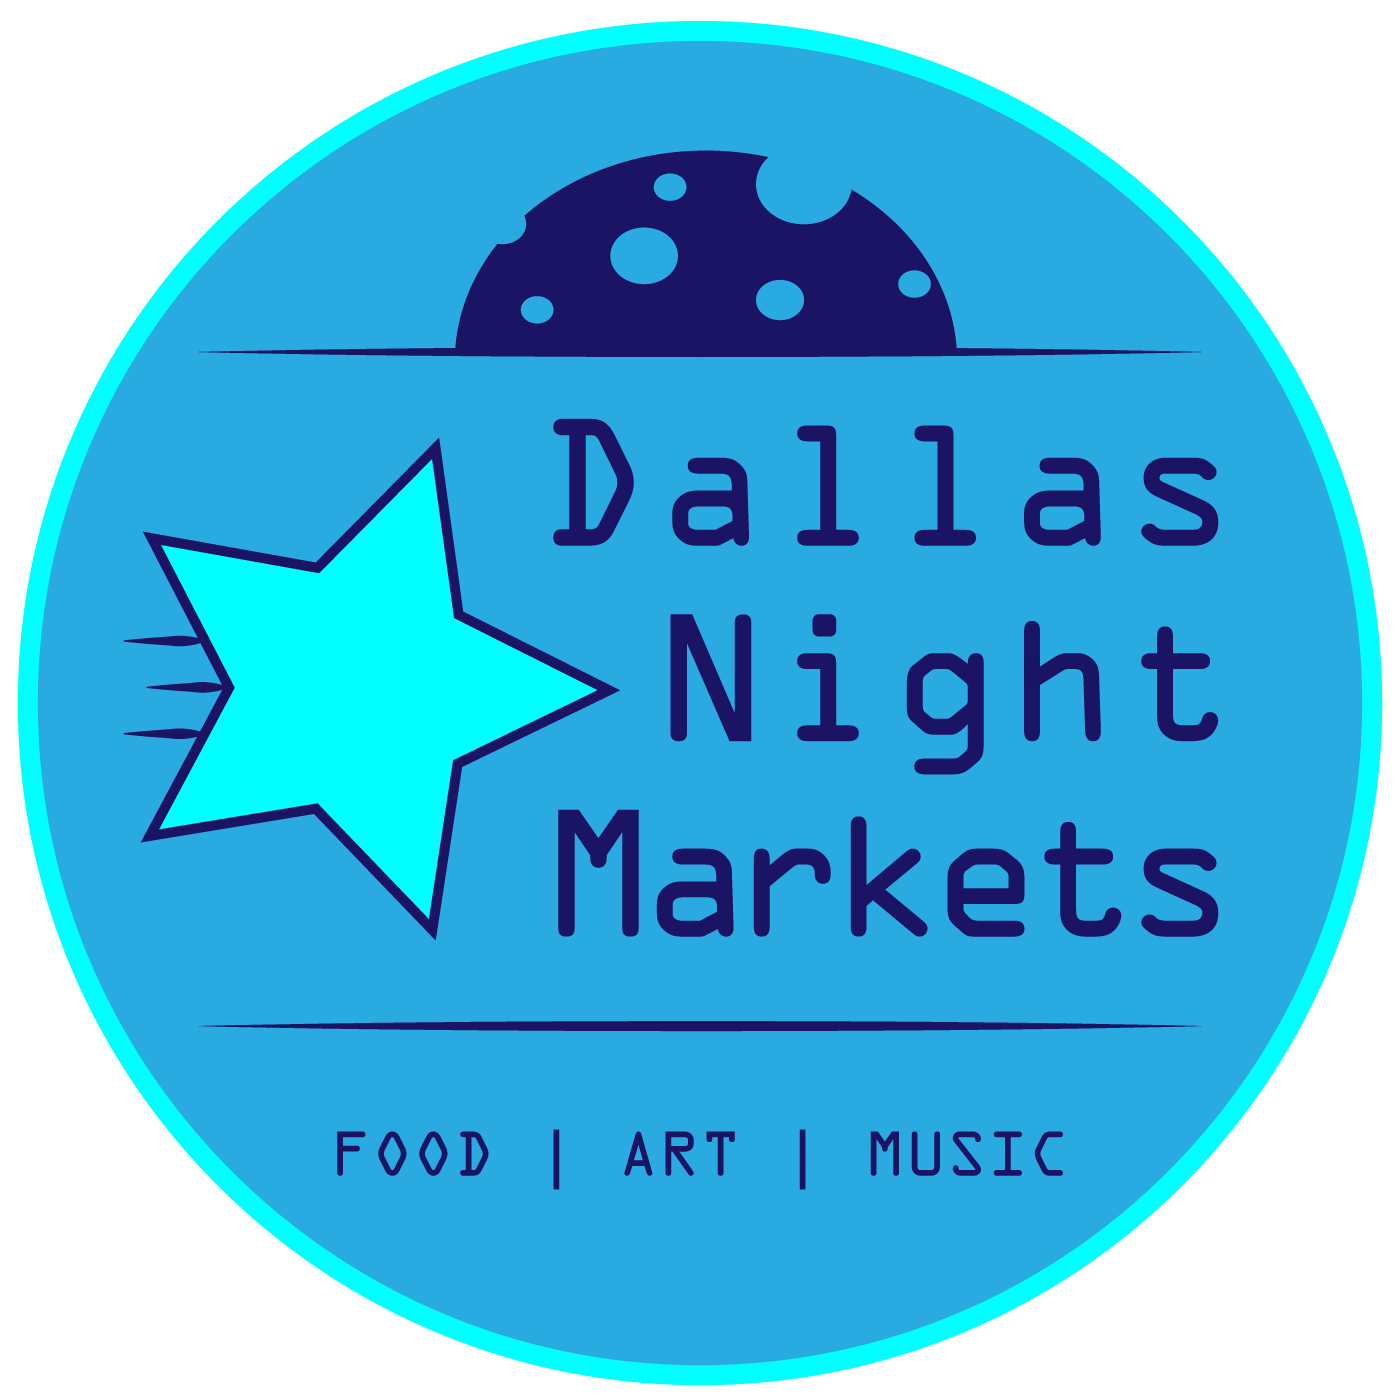 Dallas Night Markets